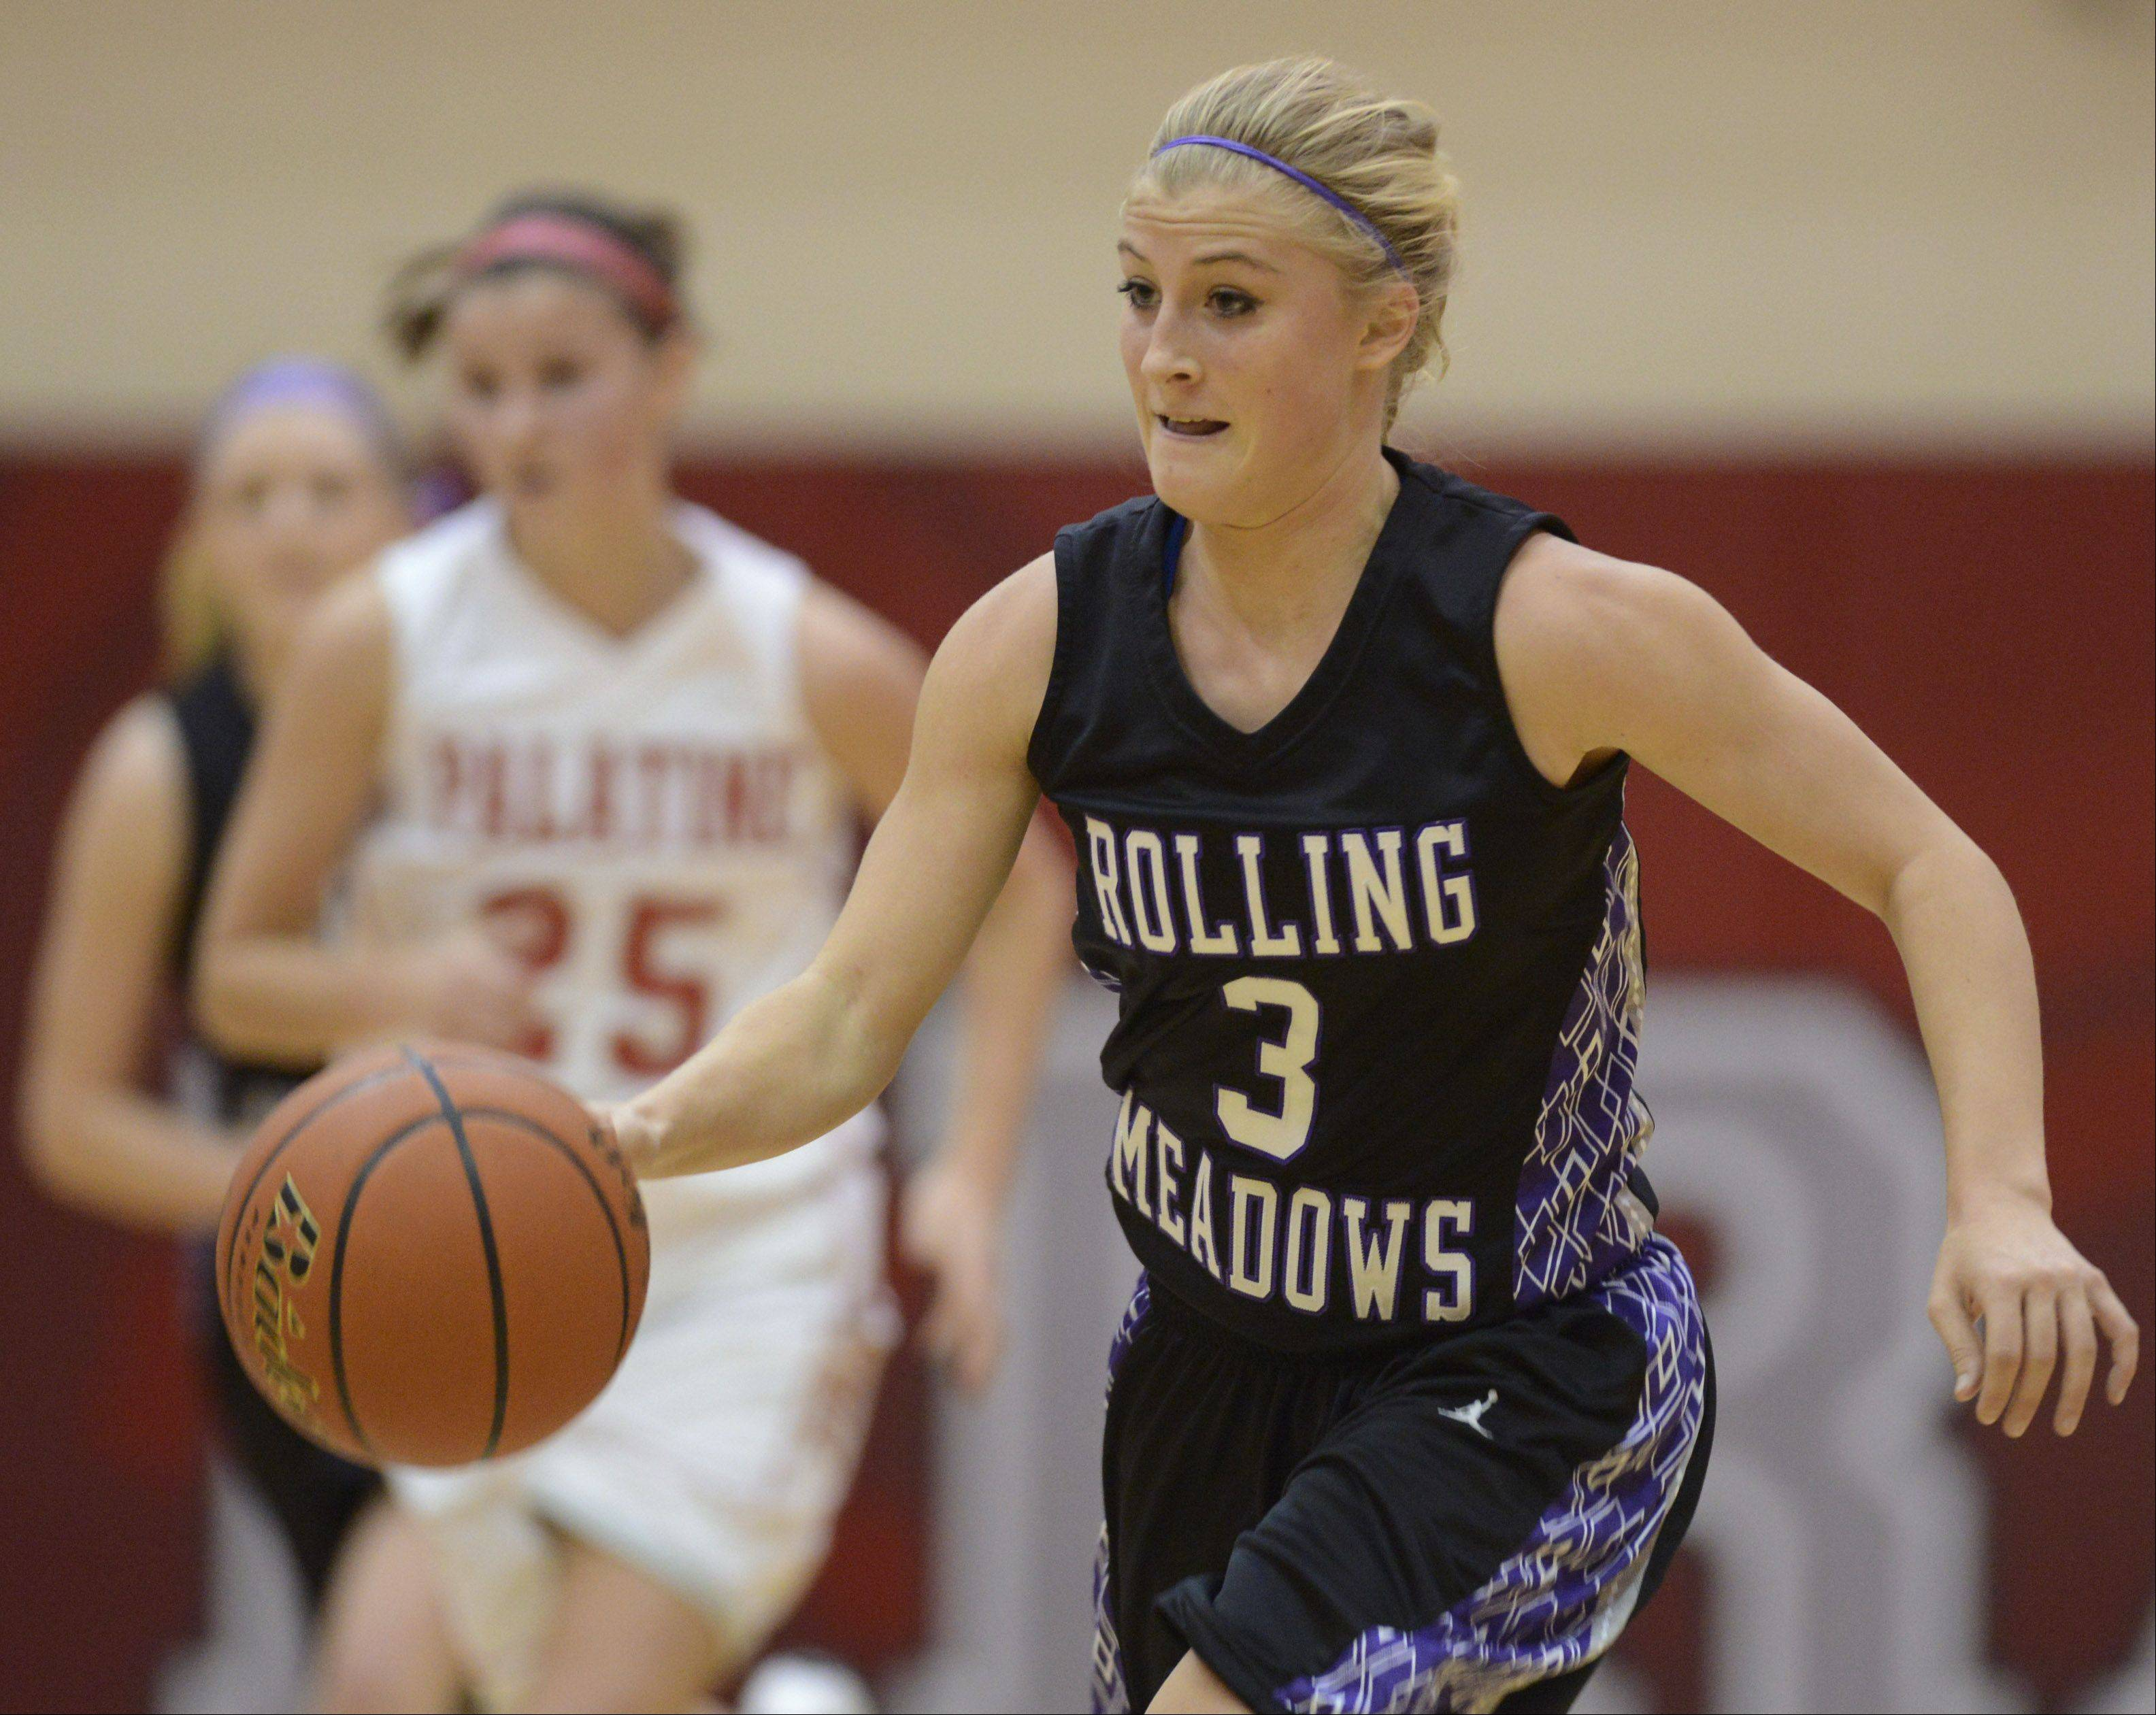 Rolling Meadows' Jackie Kemph leads a fast break against Palatine.